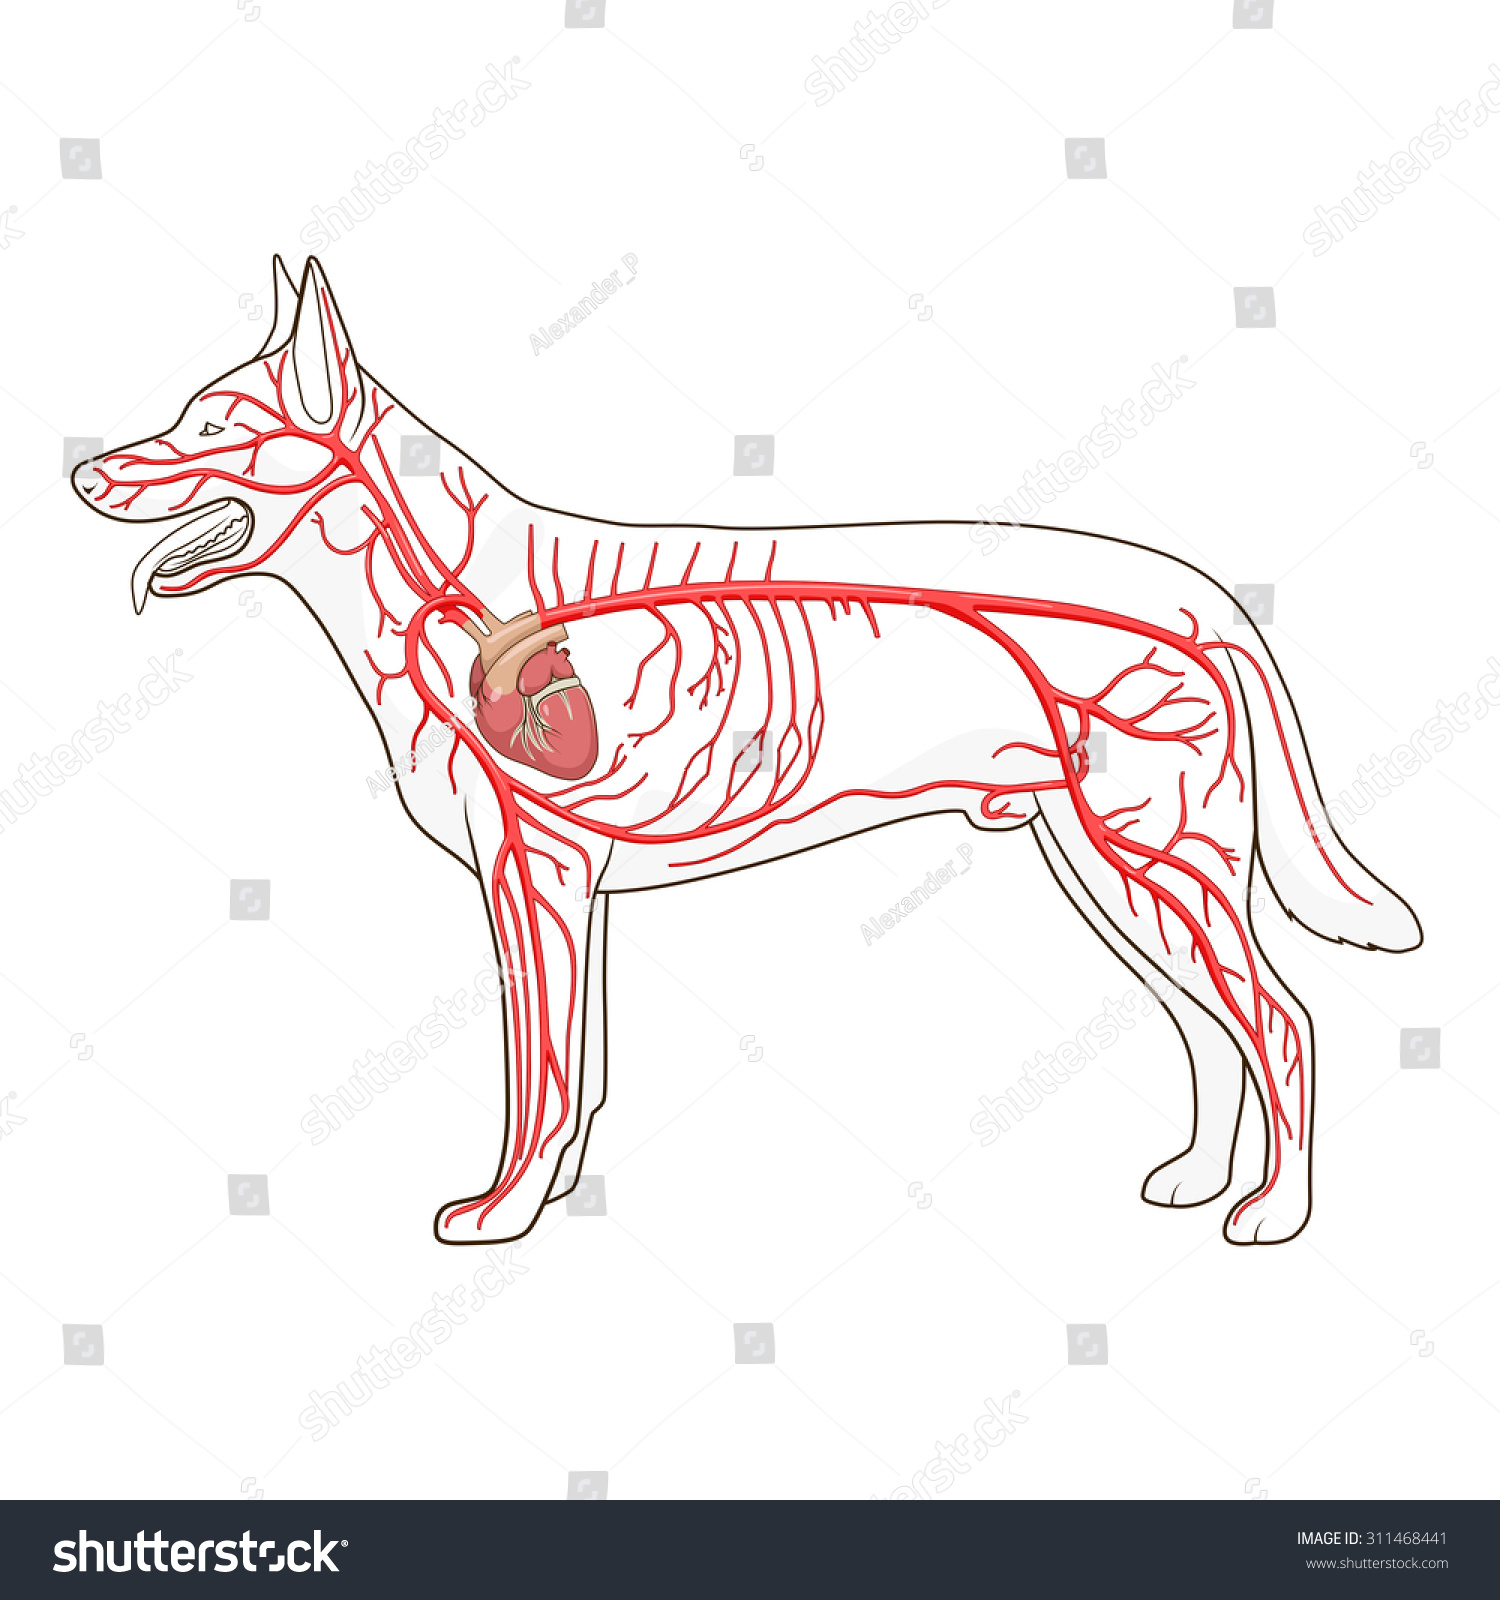 Arterial Circulatory System Dog Vector Illustration Stock